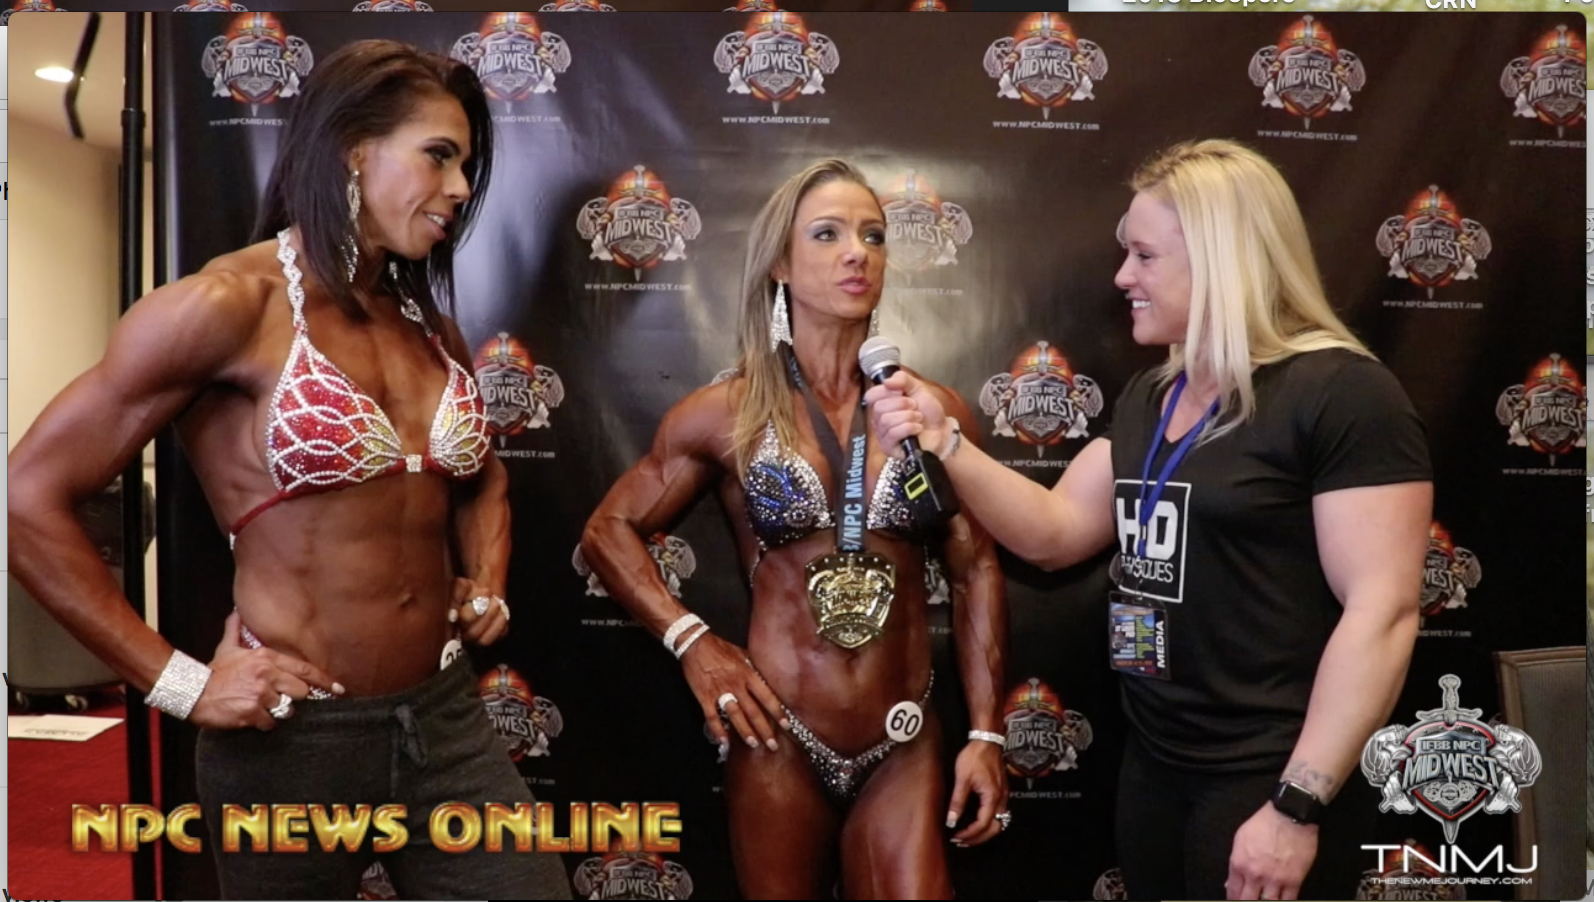 2018 IFBB 1st Phorm St.Louis Pro Women's Physique Winner Marjorie Beck